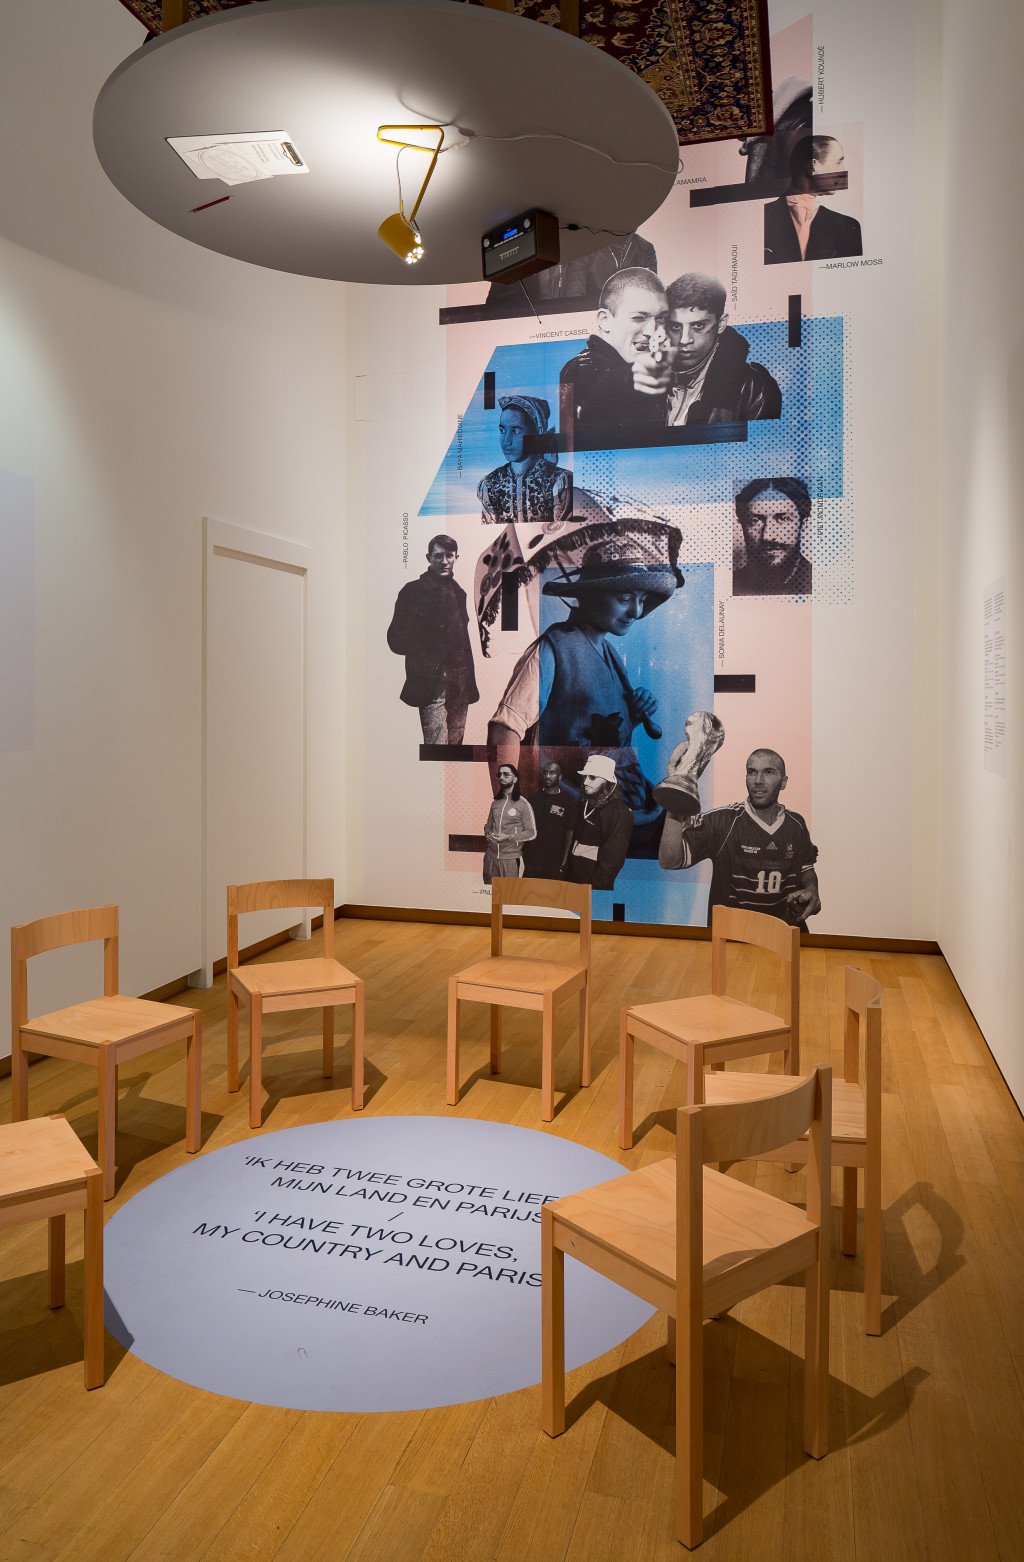 The Salon, wall collage with immigrants in Paris, then and now, including the artists Chagall, Sonia Delaunay, Marlow Moss, Baya Mahieddine, singer Aya Nakamura and rap duo PNL. Their music could also be heard in The Salon. Photo: Peter Tijhuis.